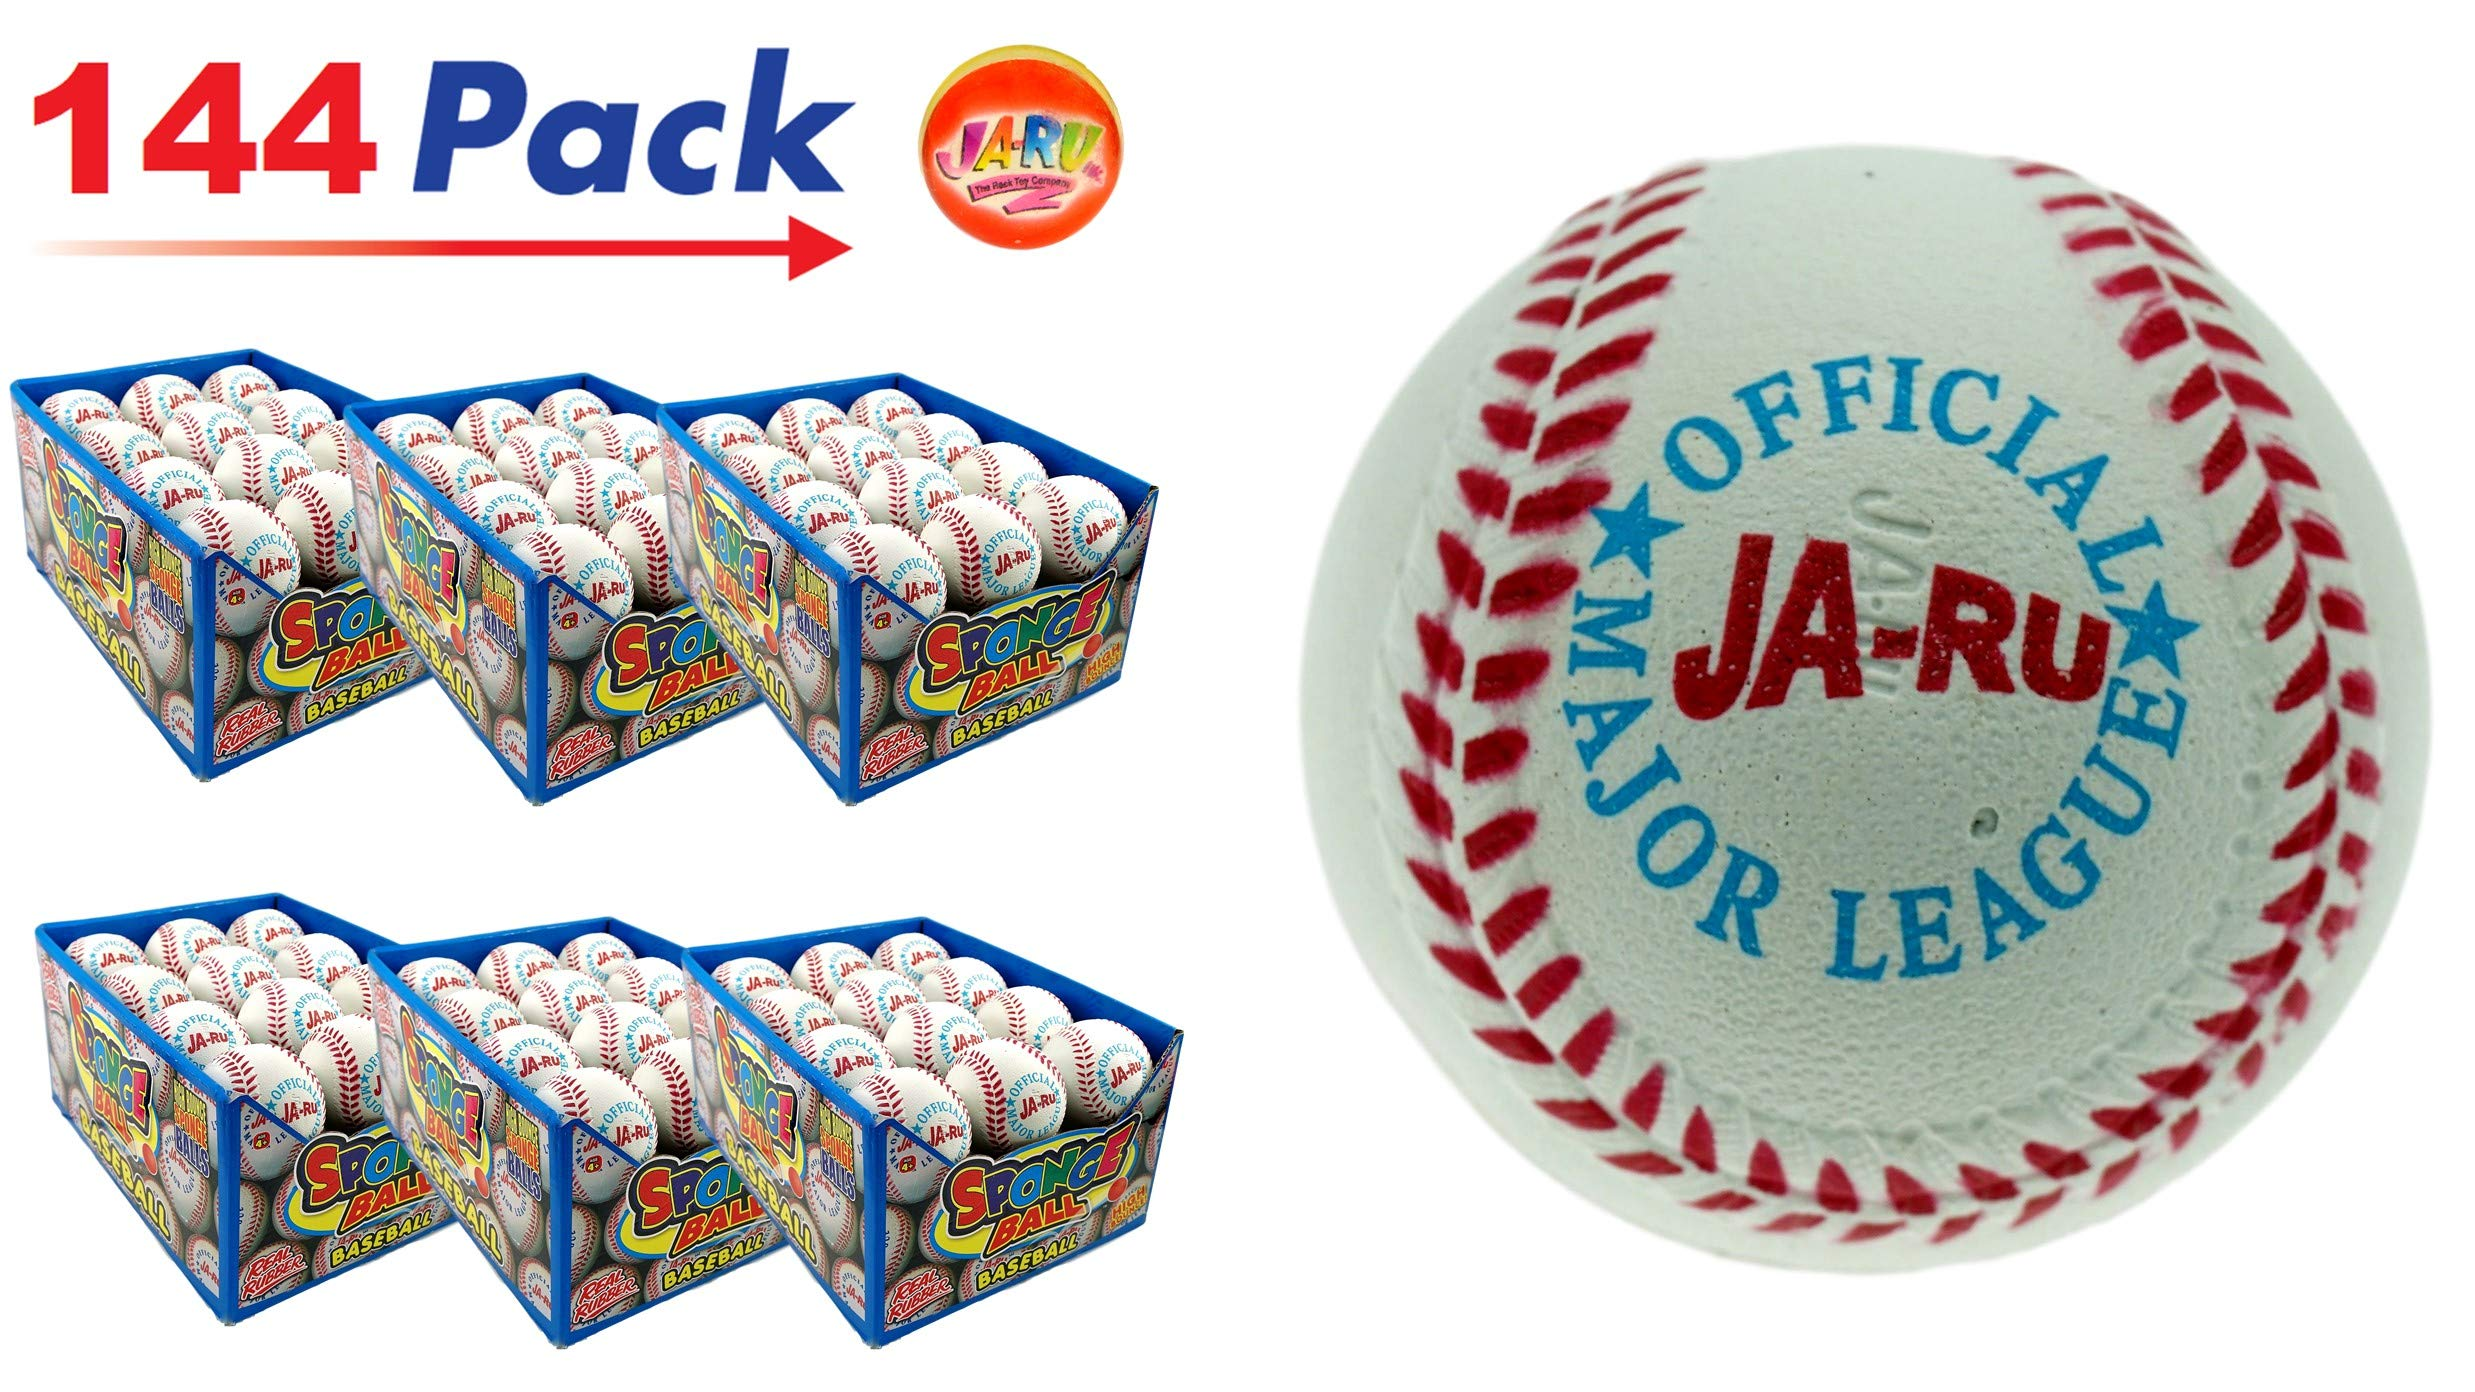 Rubber Bouncy Ball Baseball Style (Pack of 144) by JA-RU 2.5'' Hi Bounce Same Like Pinky Balls for Play or Massage Therapy. Plus 1 Small Ball. #987-144p by JaRu